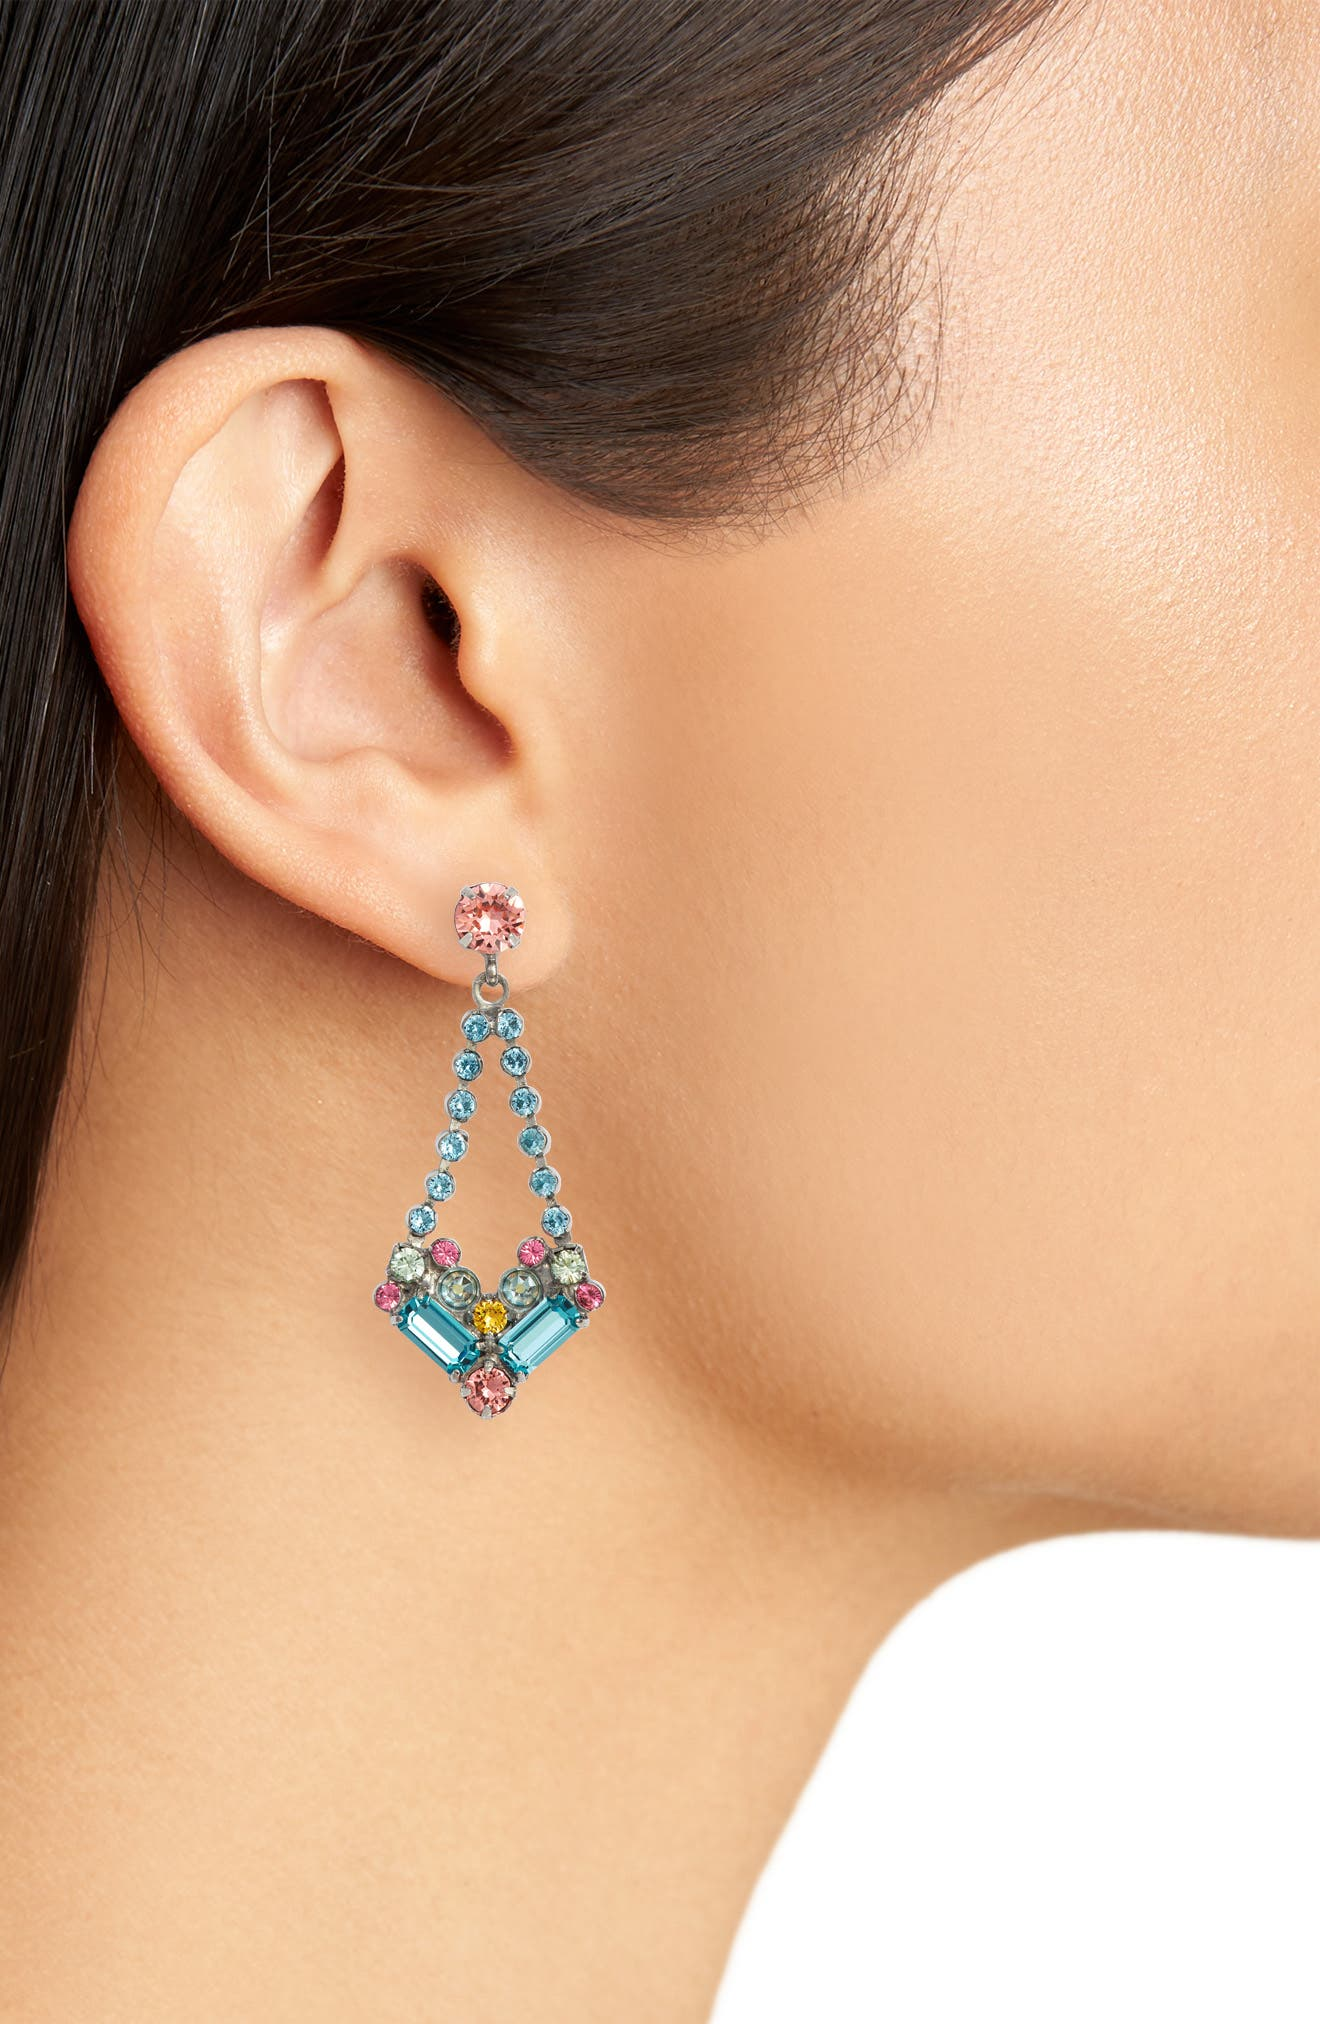 Kalmia Earrings,                             Alternate thumbnail 2, color,                             400